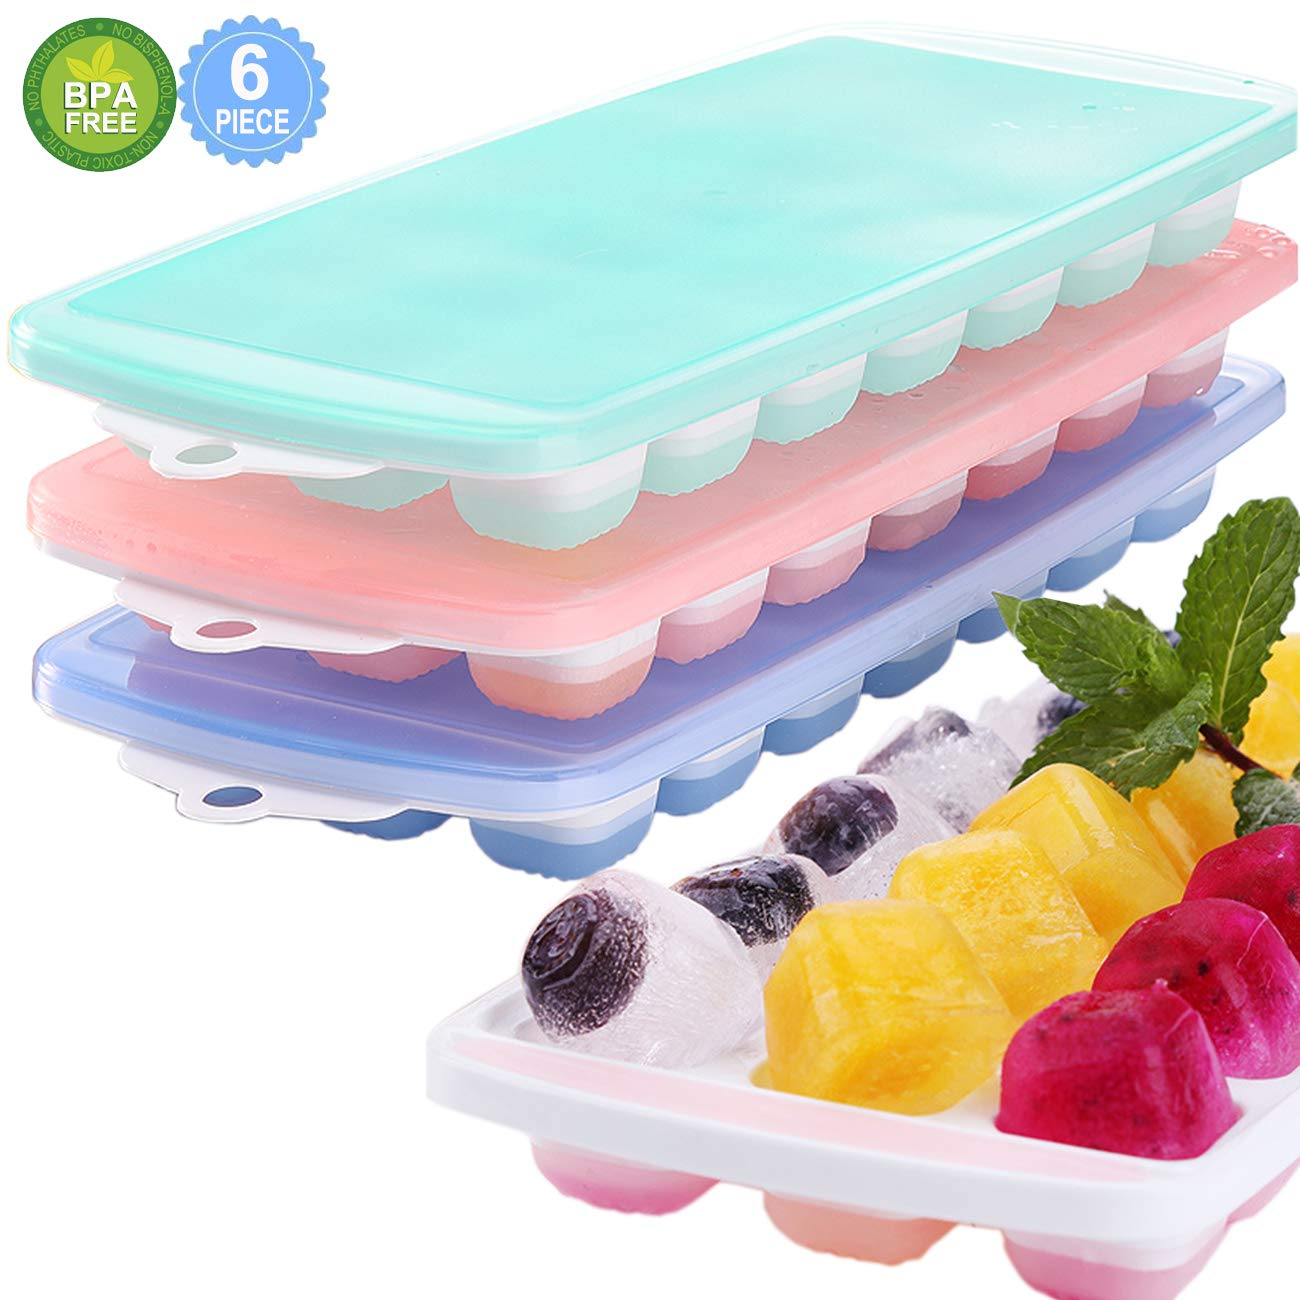 Ice Cube Trays, 3 Packs Food Grade Flexible Silicone Ice Cube Molds Tray with Lids, Easy Release Ice Trays Make 63 Ice Cube, Stackable Durable and Dishwasher Microwave Safe, BPA Free